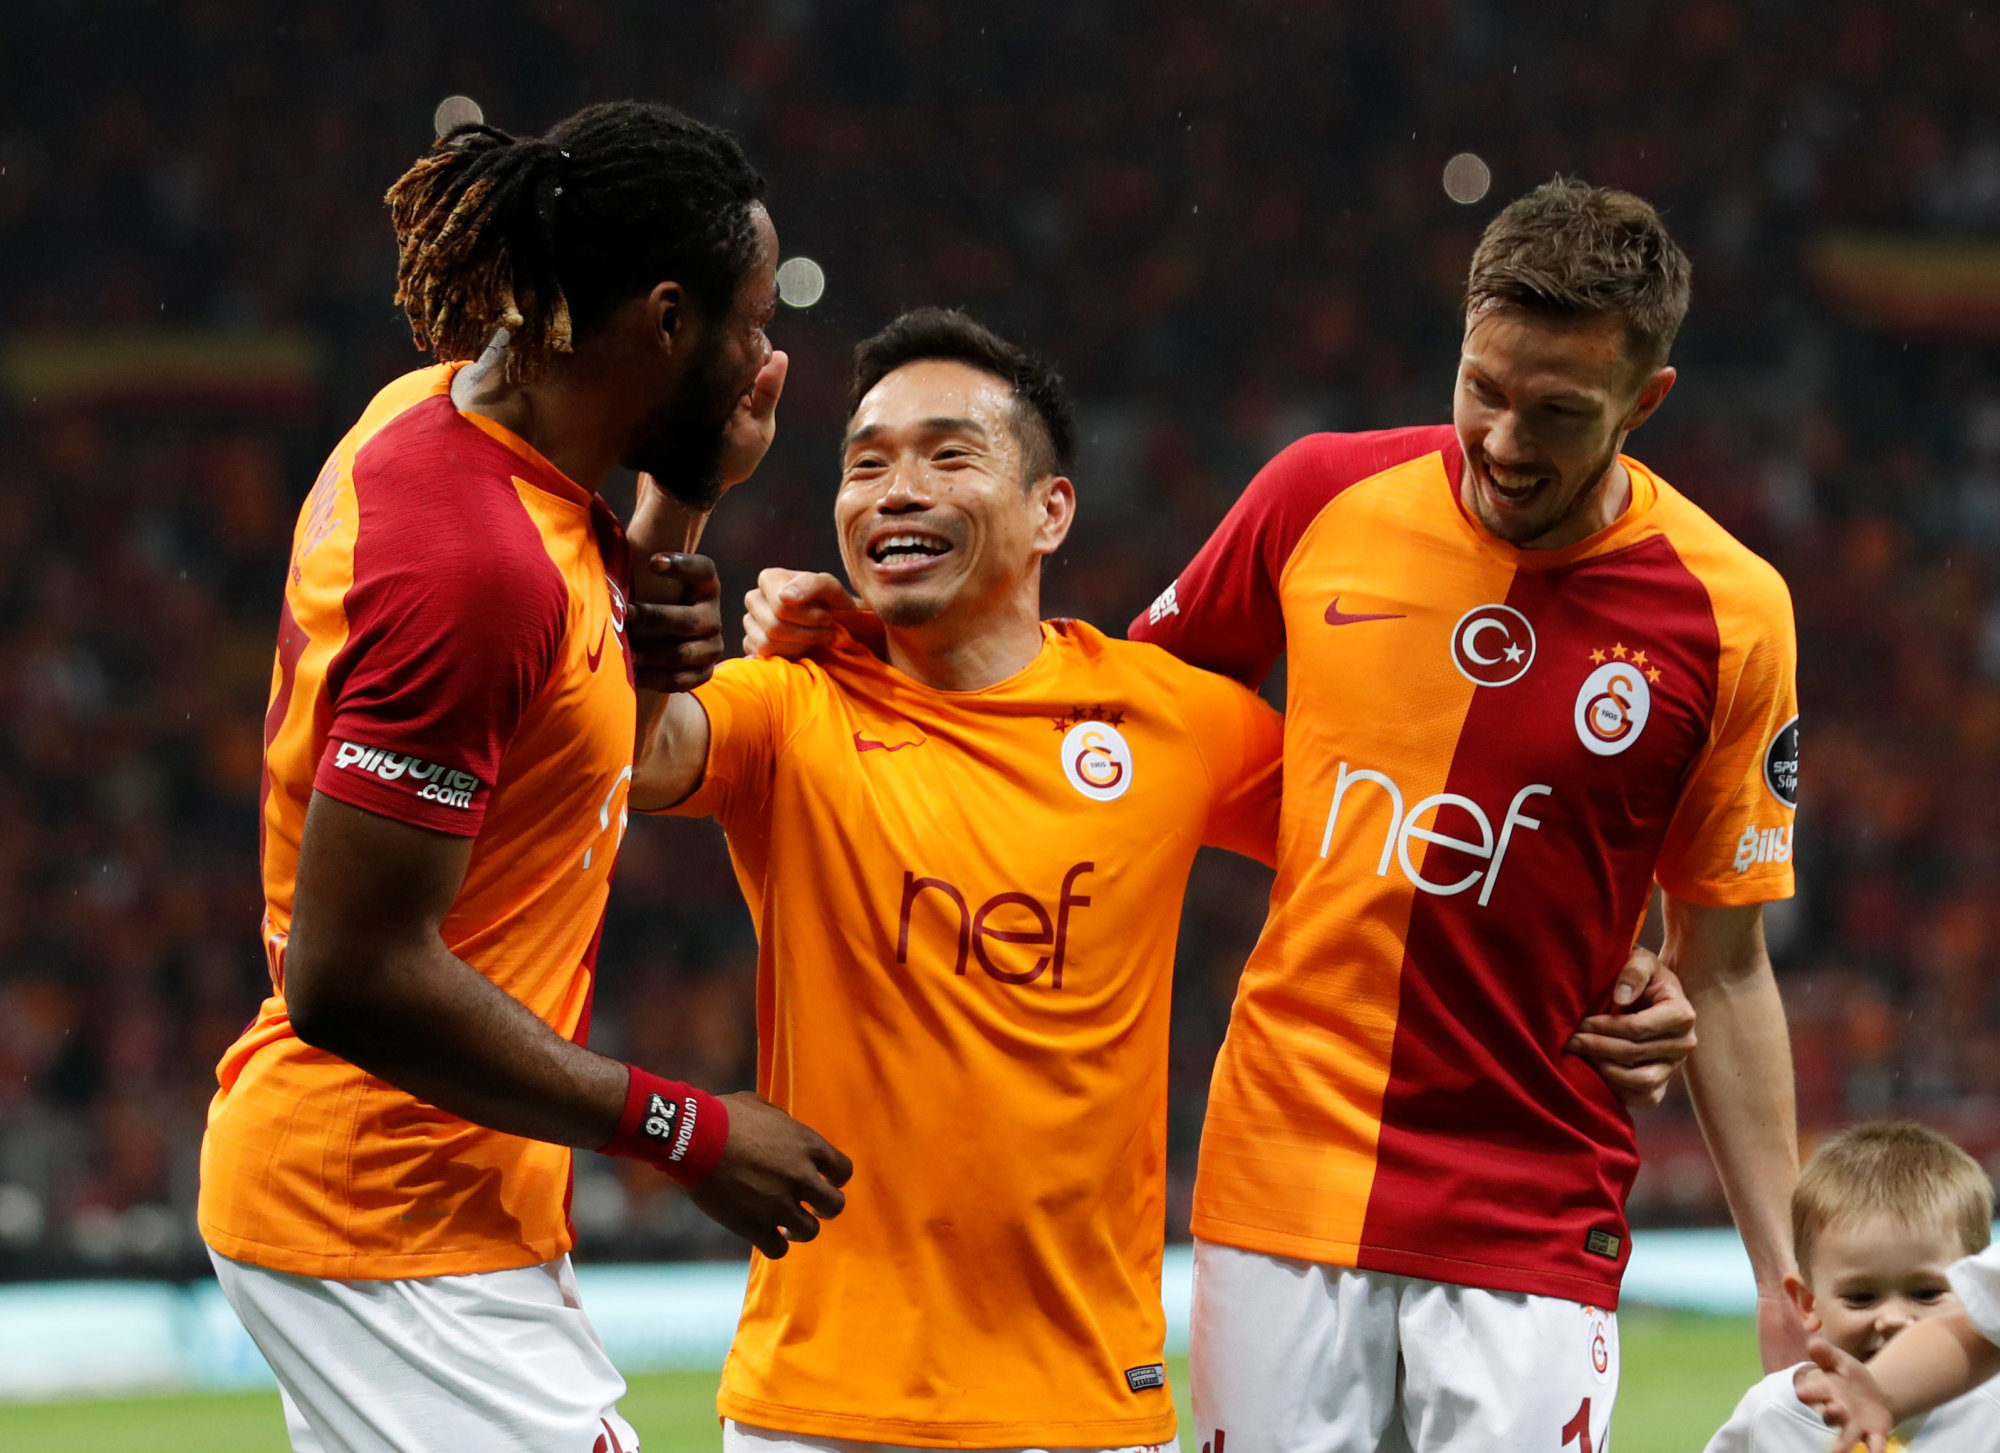 Galatasaray's Yuto Nagatomo (center) celebrates with teammates after their win over Besiktas on Sunday in Instanbul. | REUTERS